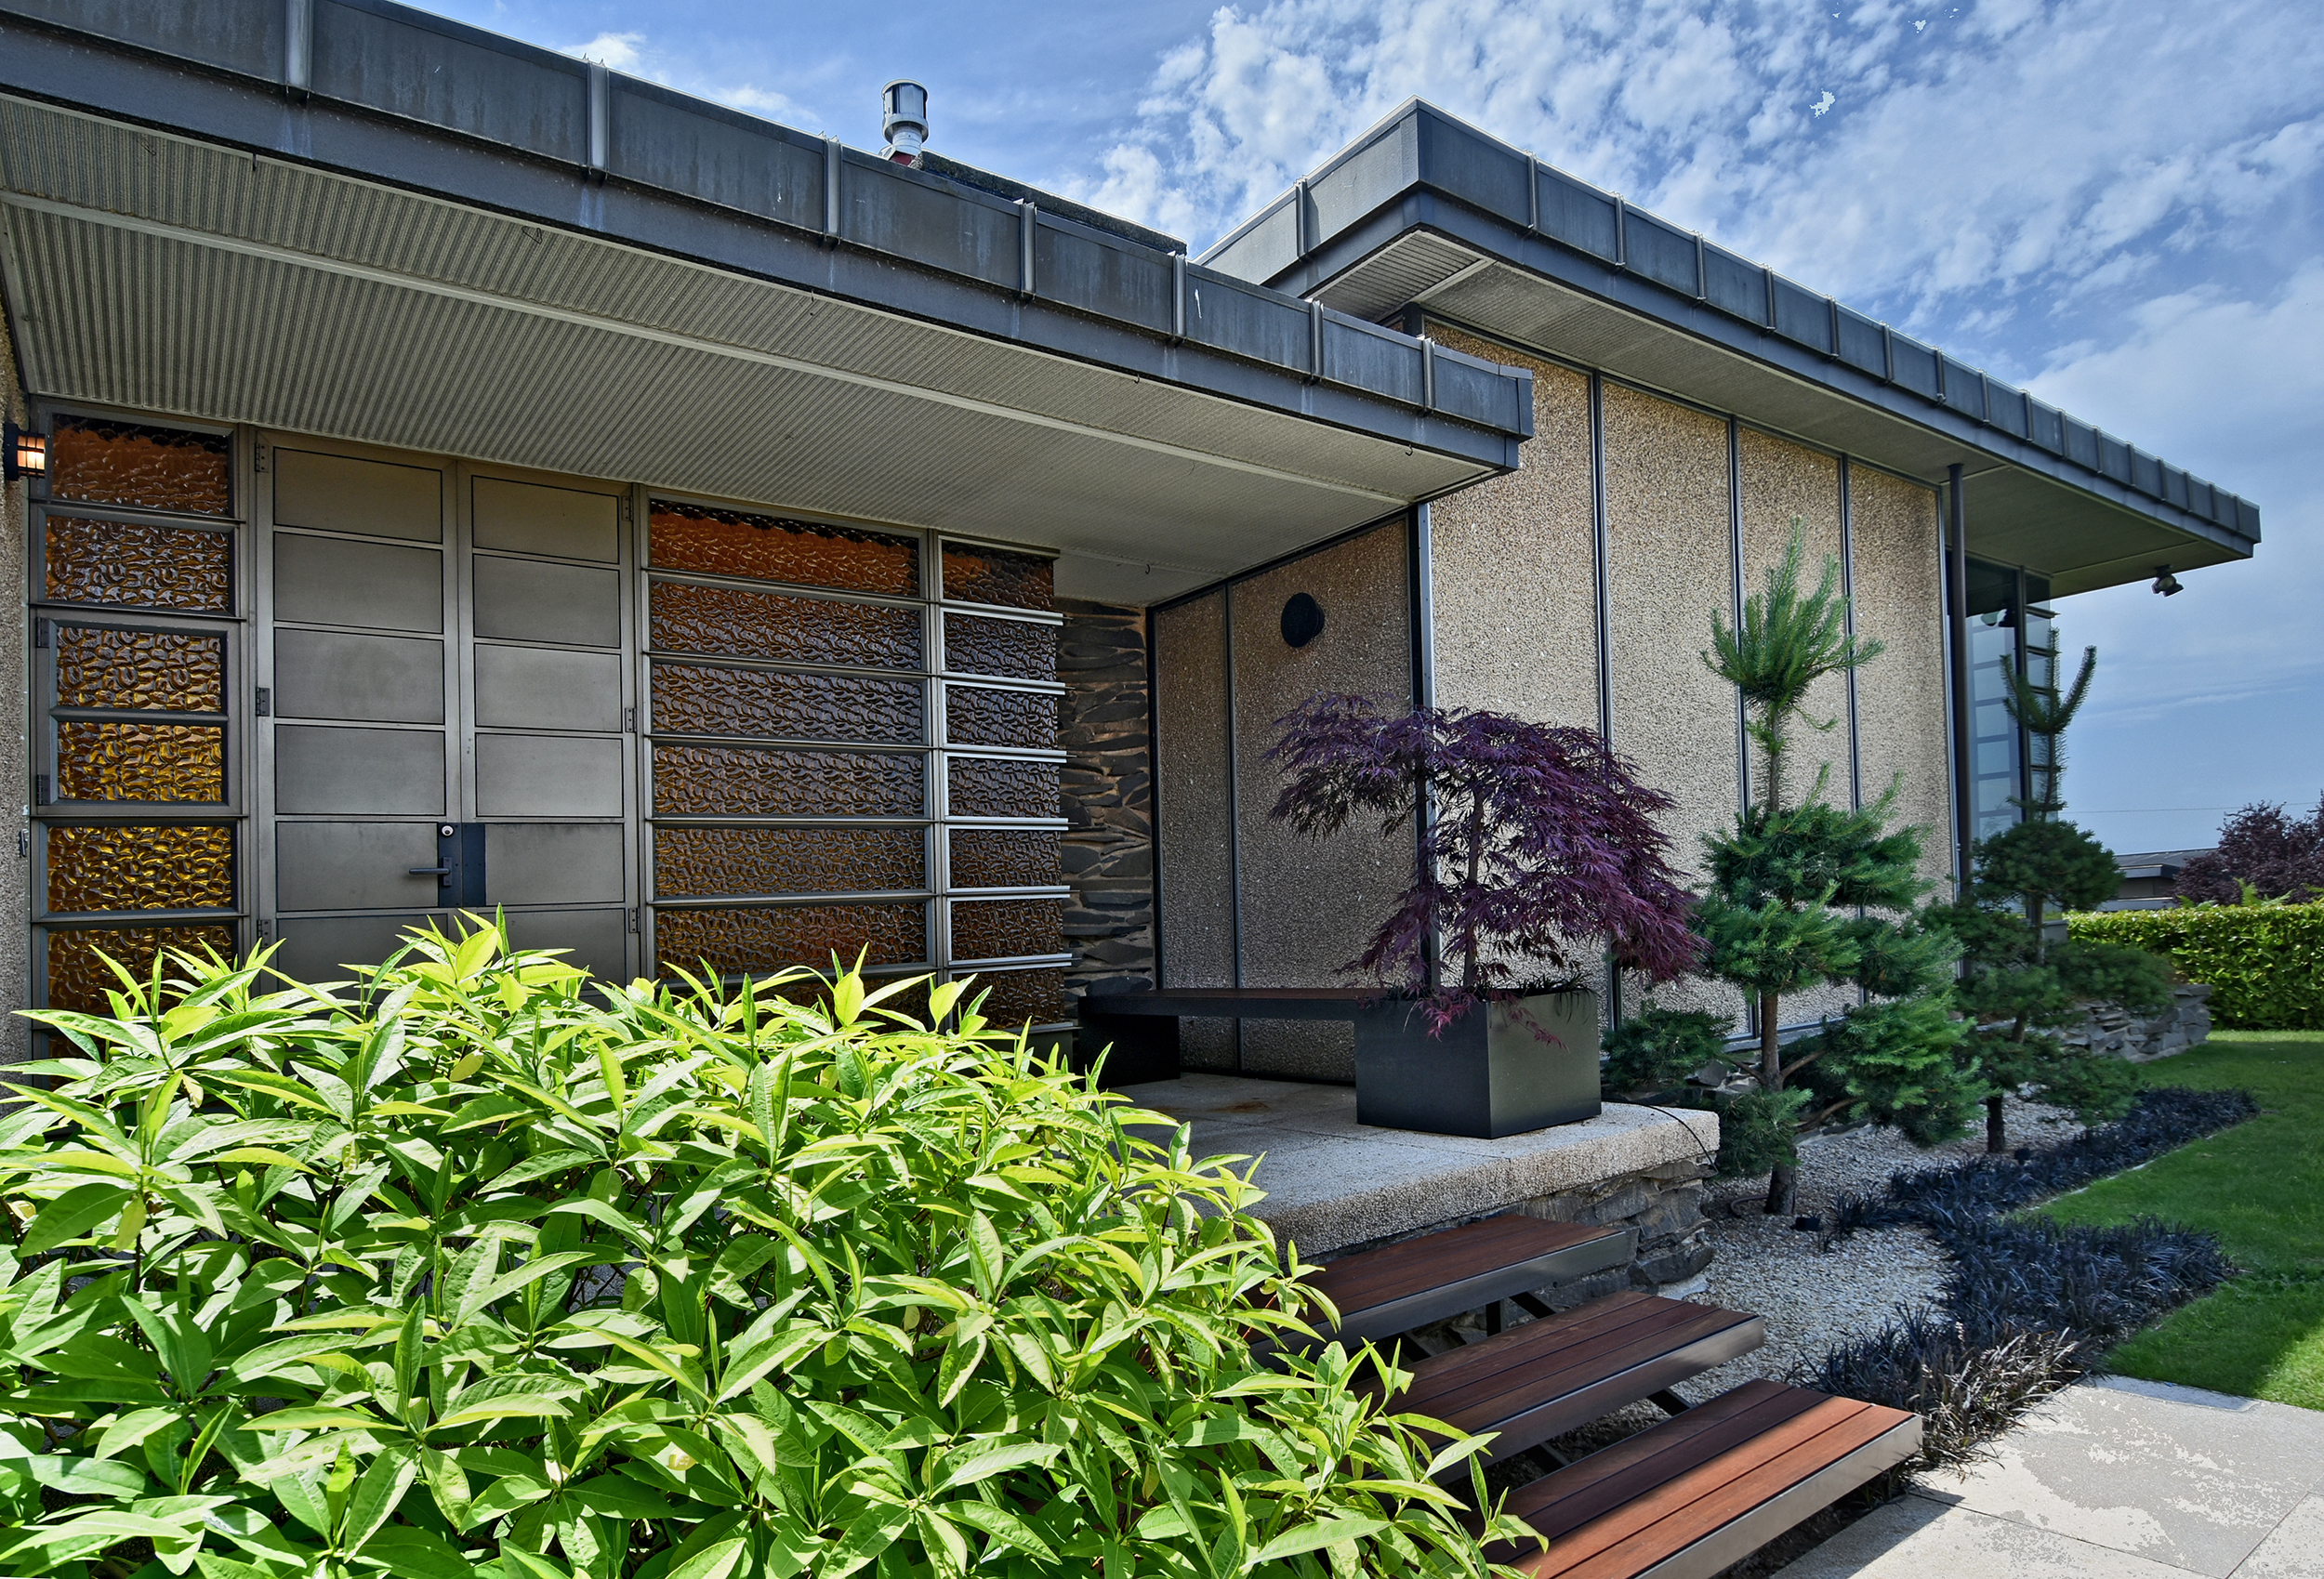 Milton Stricker midcentury masterpiece listed for $1.75M